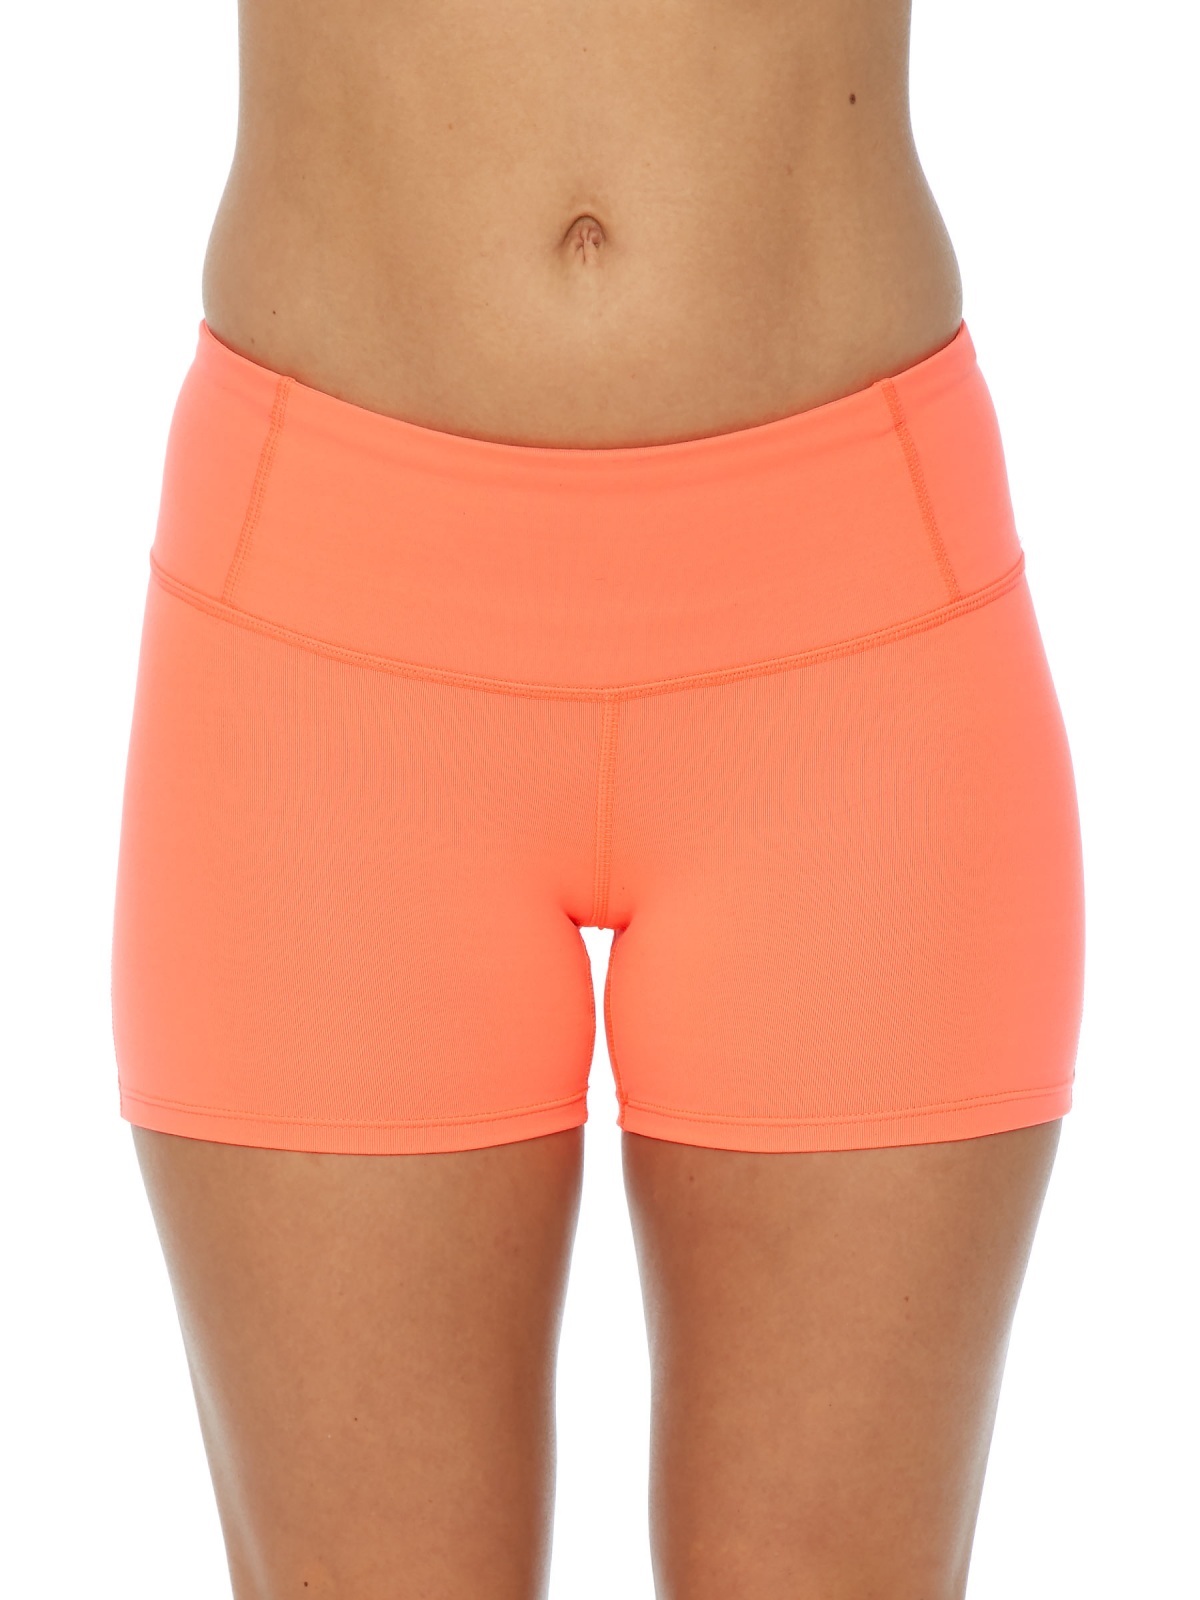 Tangy Get Shorty Shorts